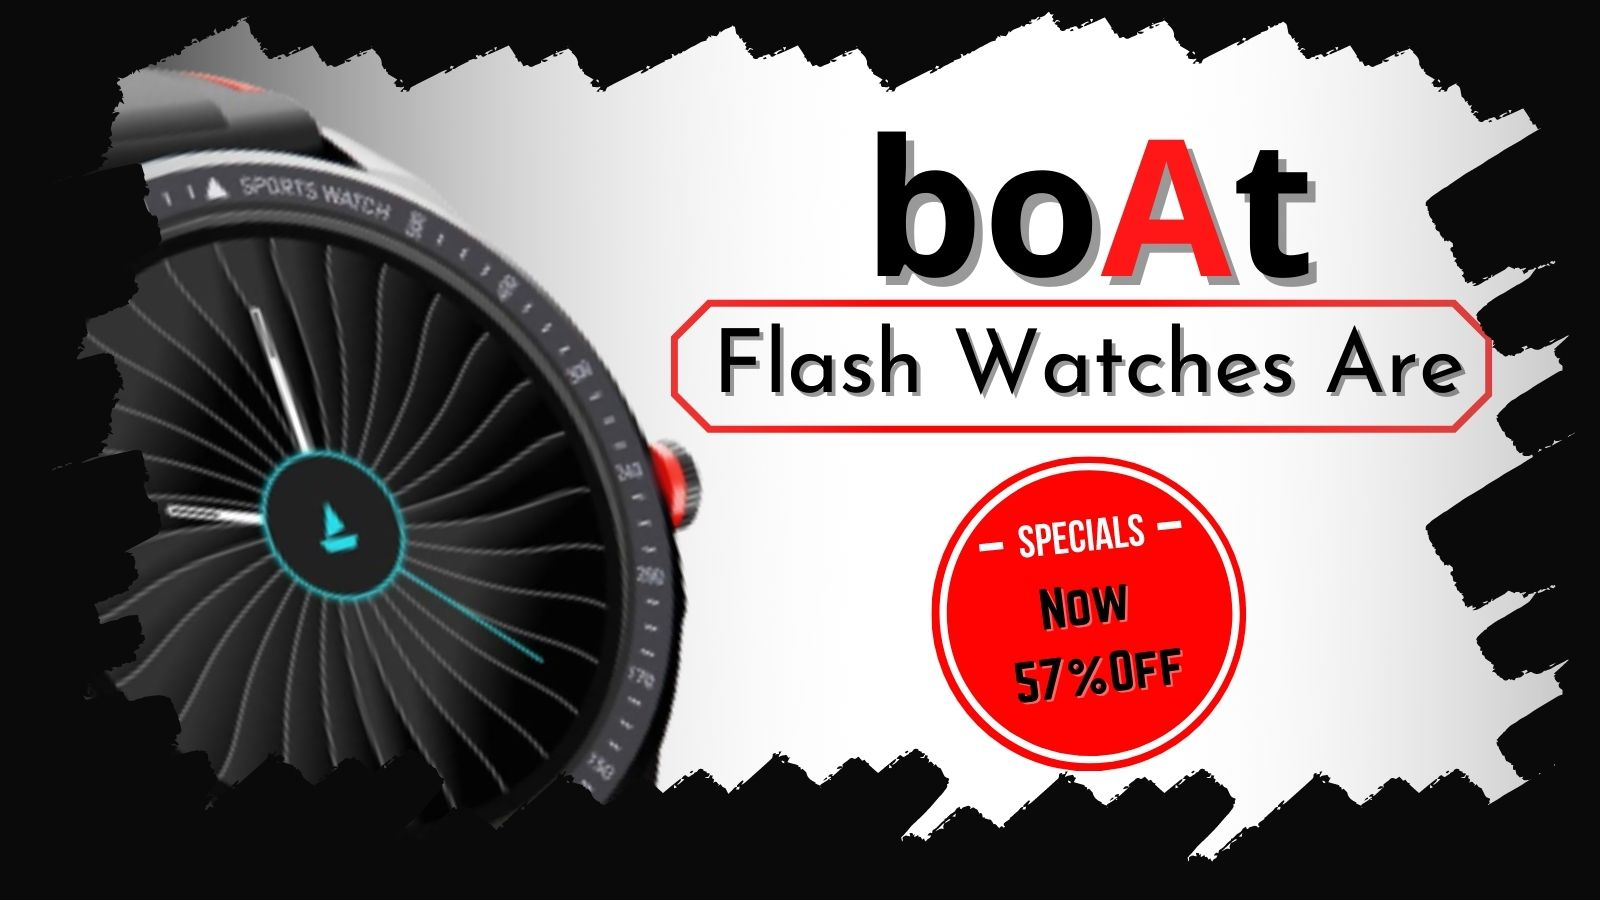 Flash Watches Are Now 57 Percent Off